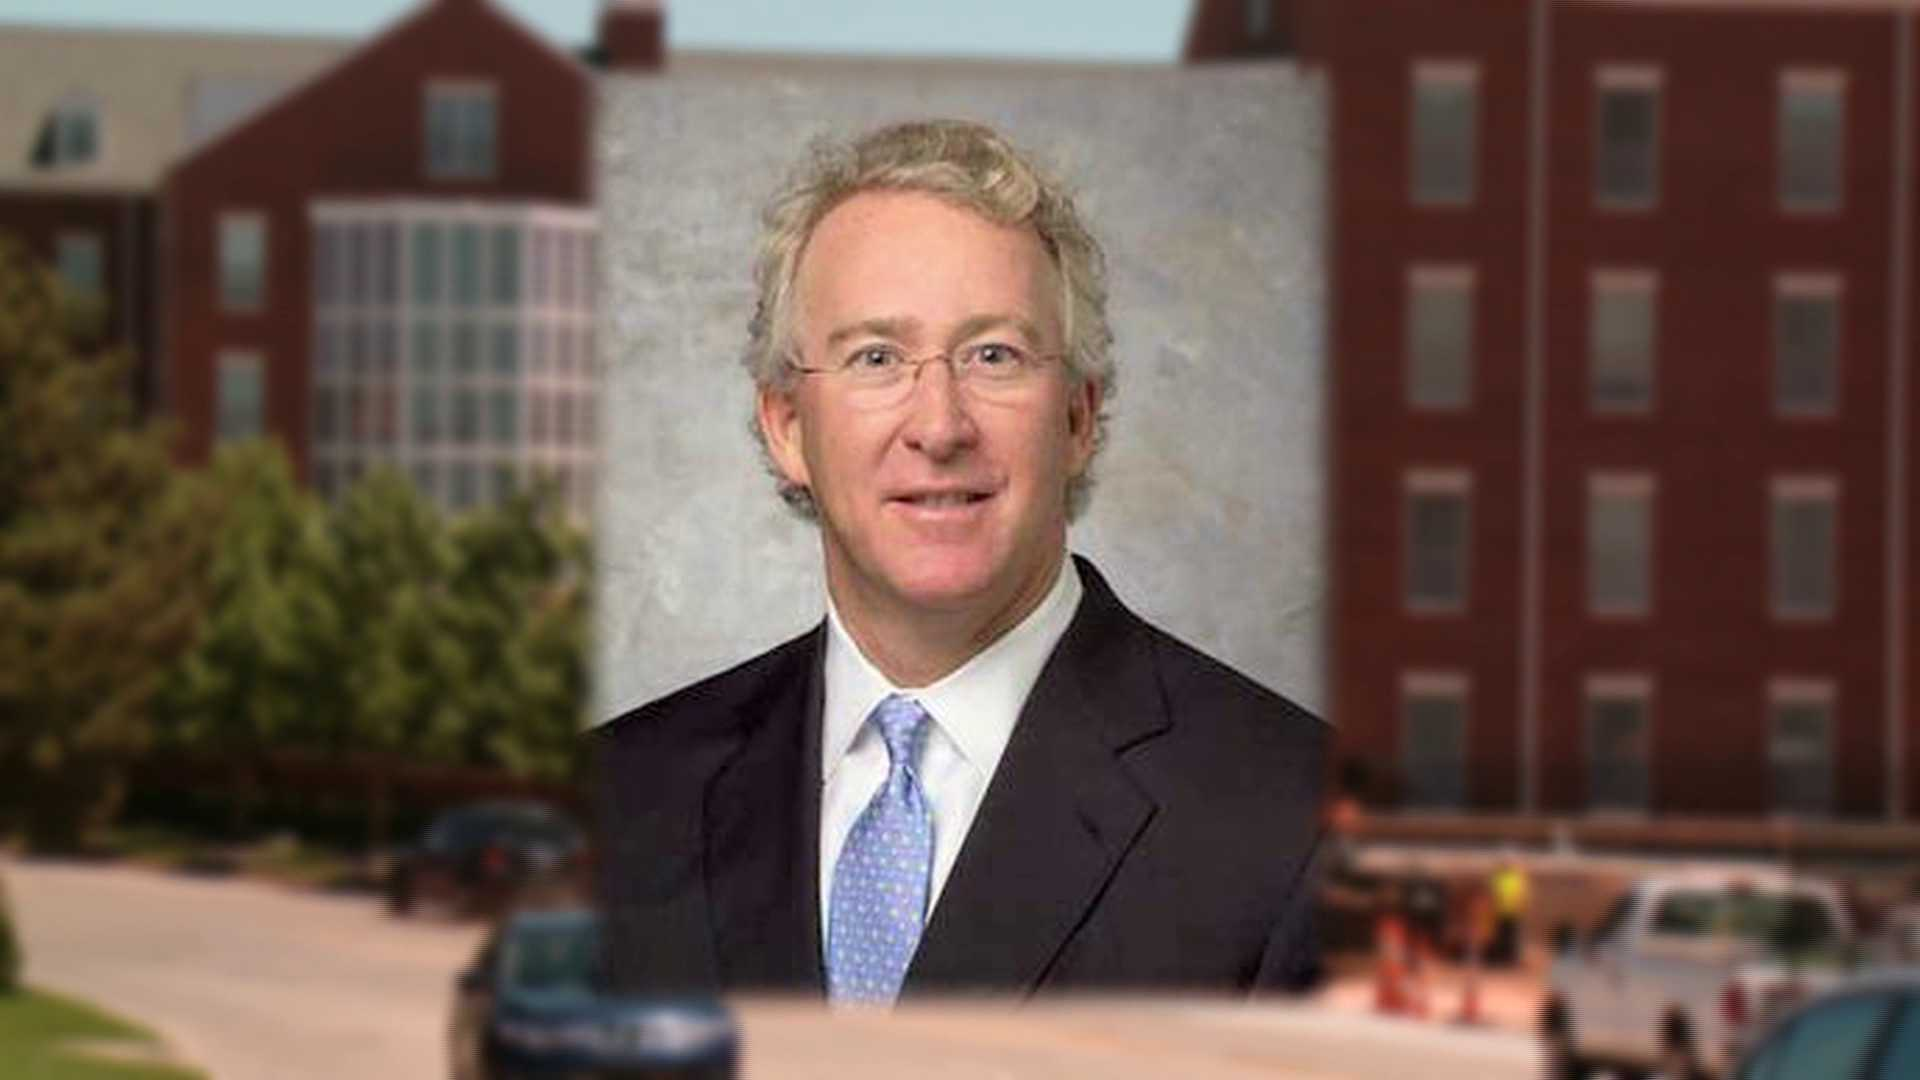 Ex-Chesapeake CEO Dies in Fiery Crash One Day After Conspiracy Charges